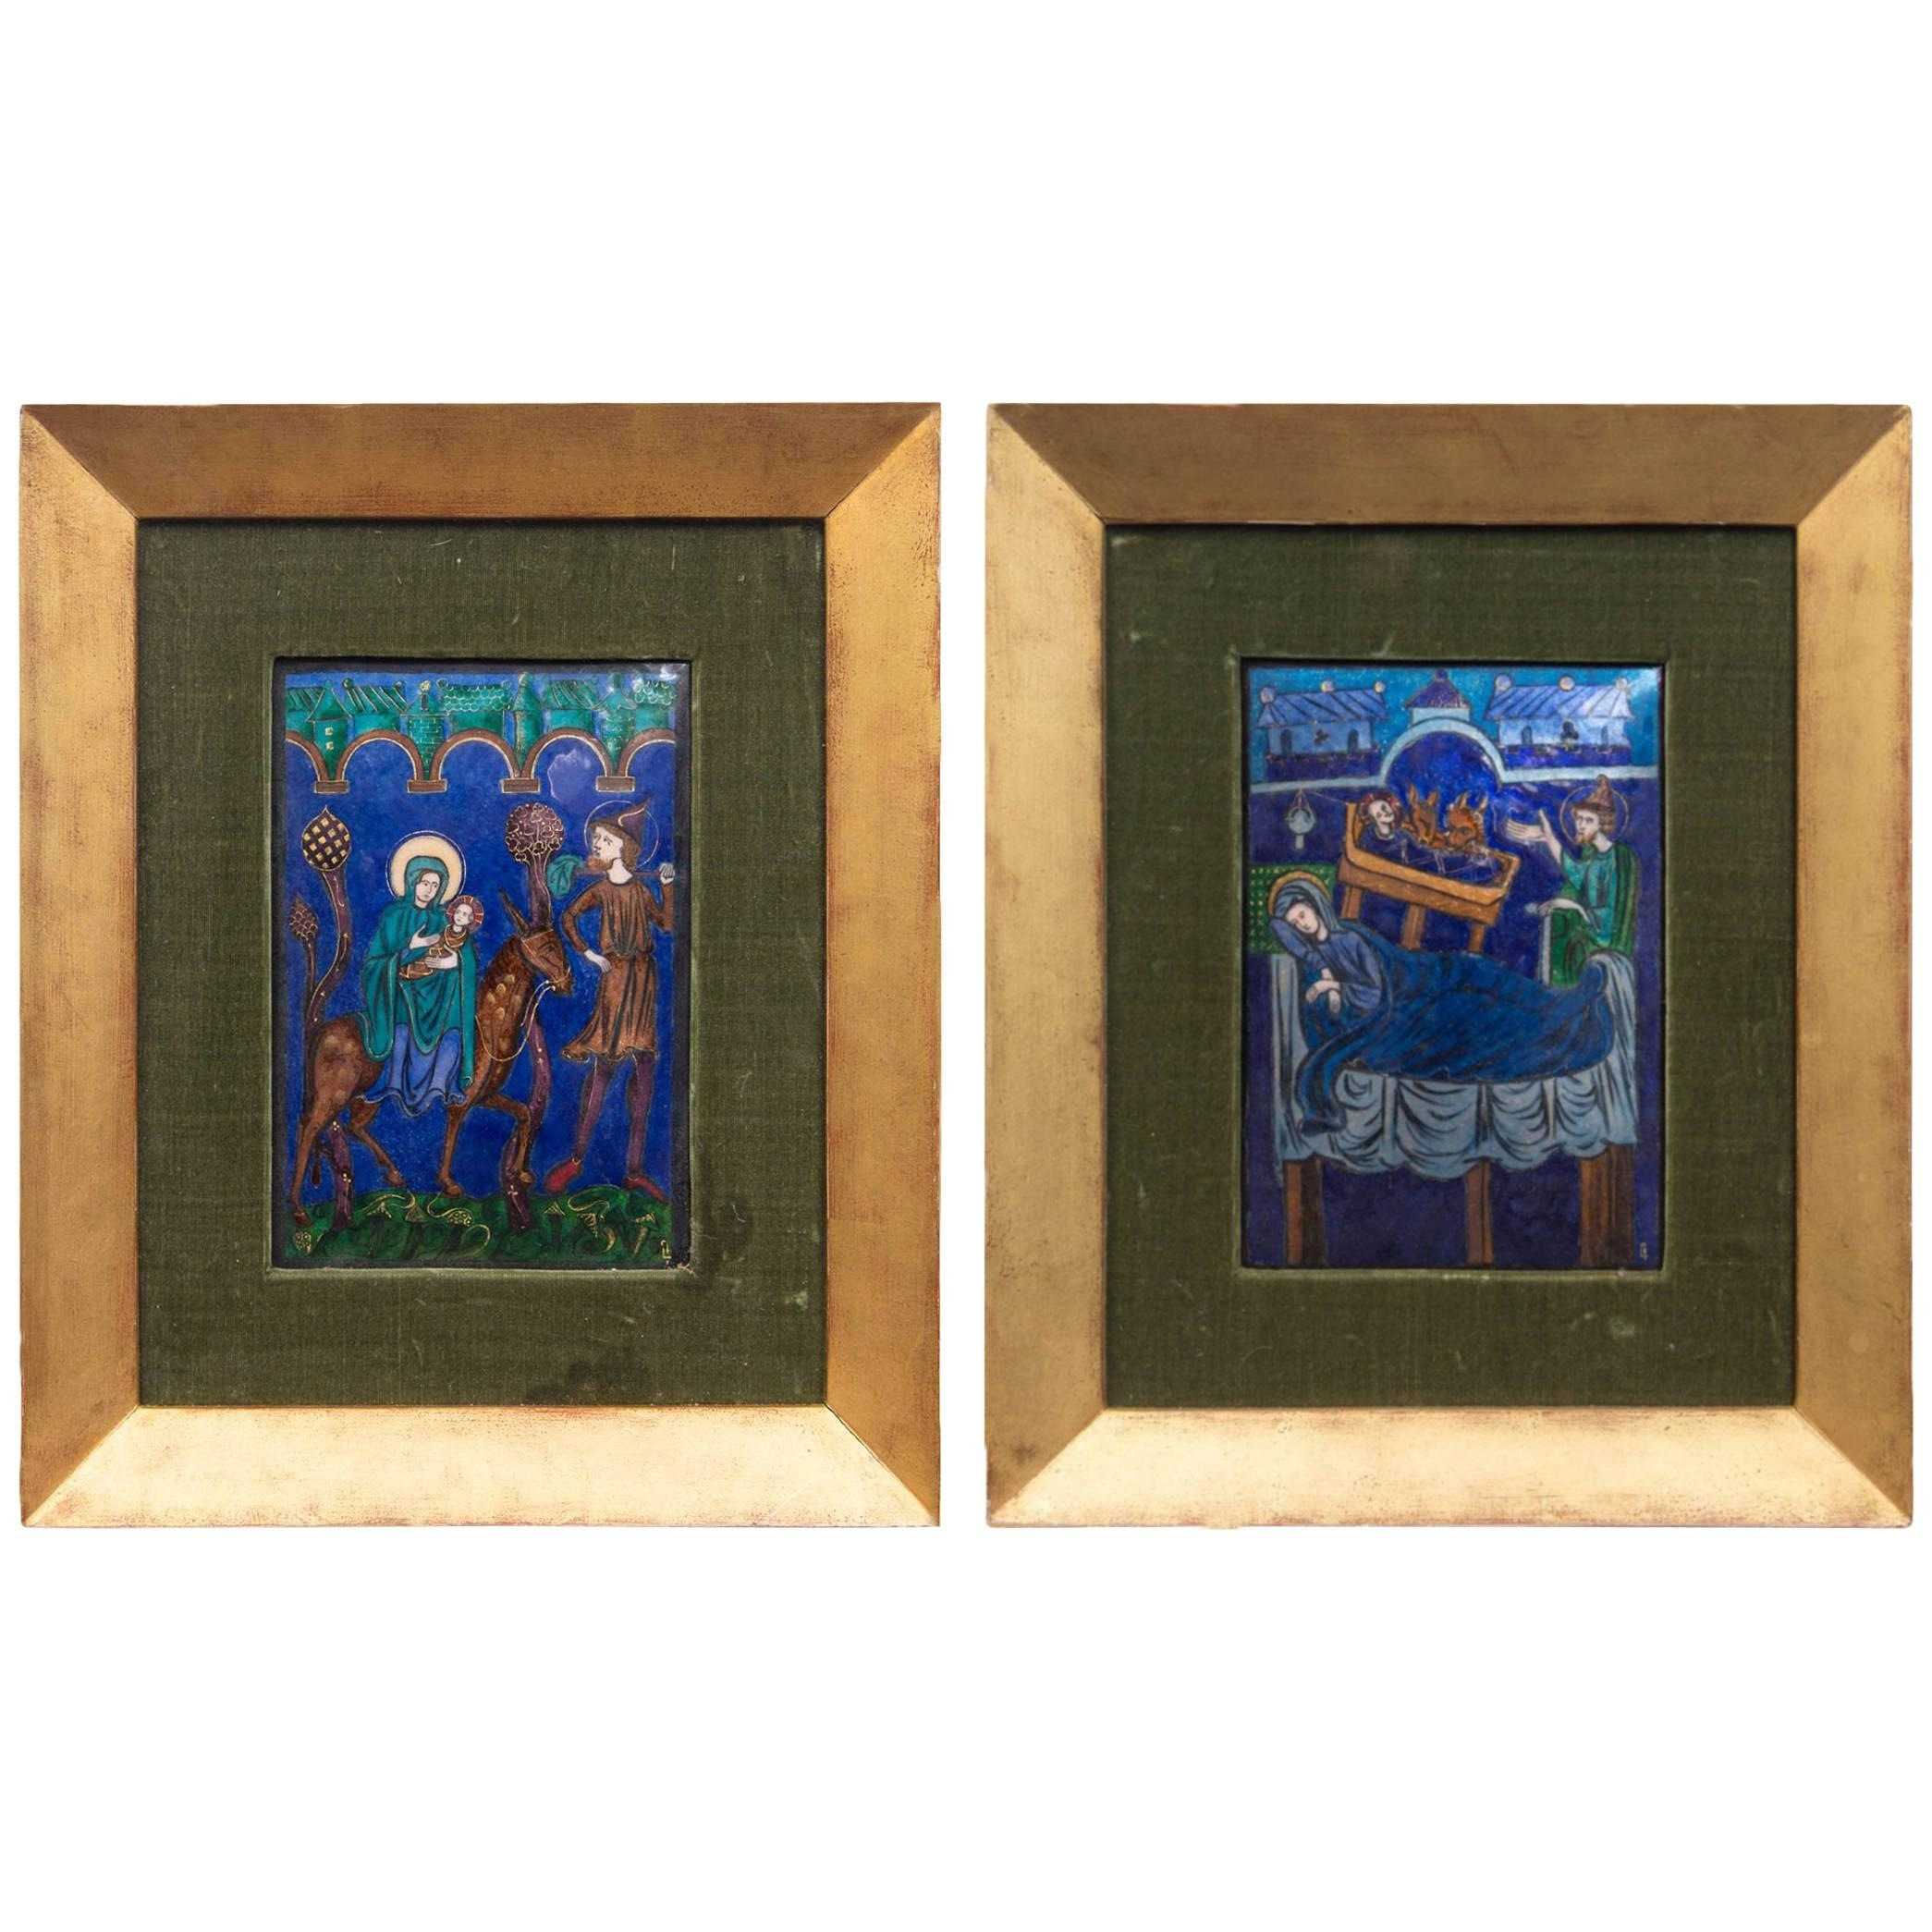 Pair of French Enamels on Copper